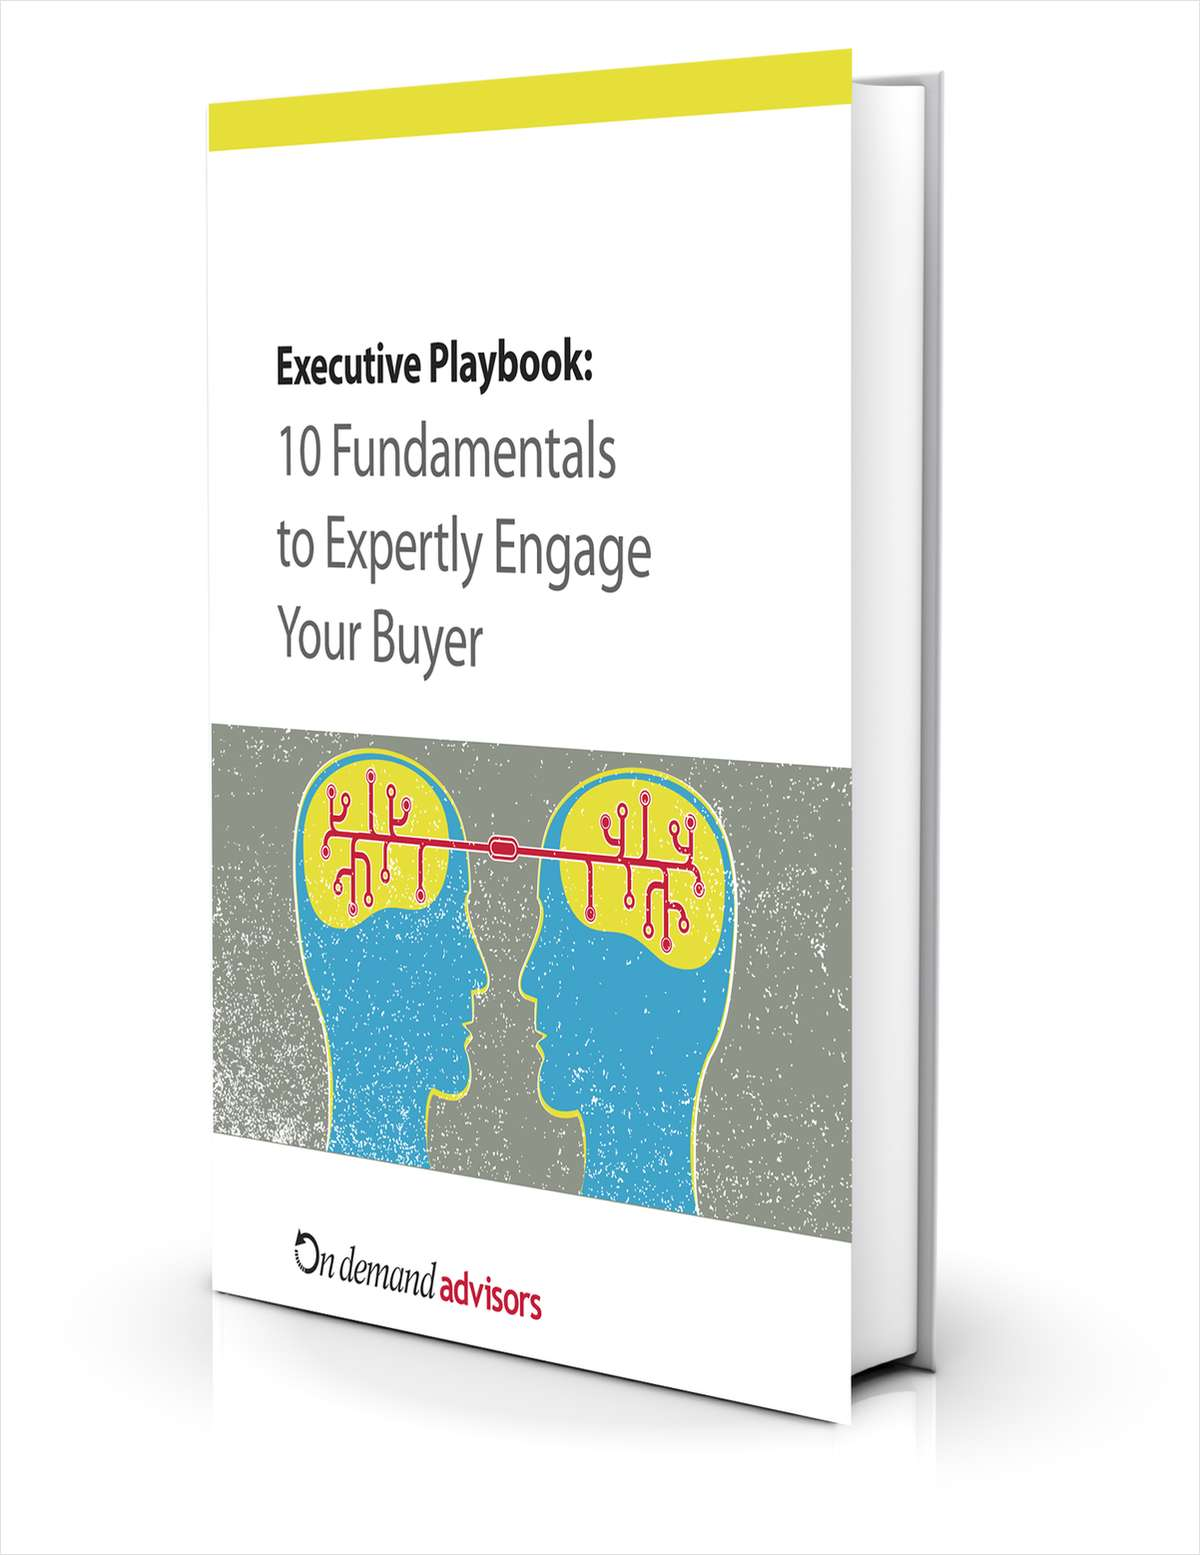 10 Fundamentals to Expertly Engage Your Buyer